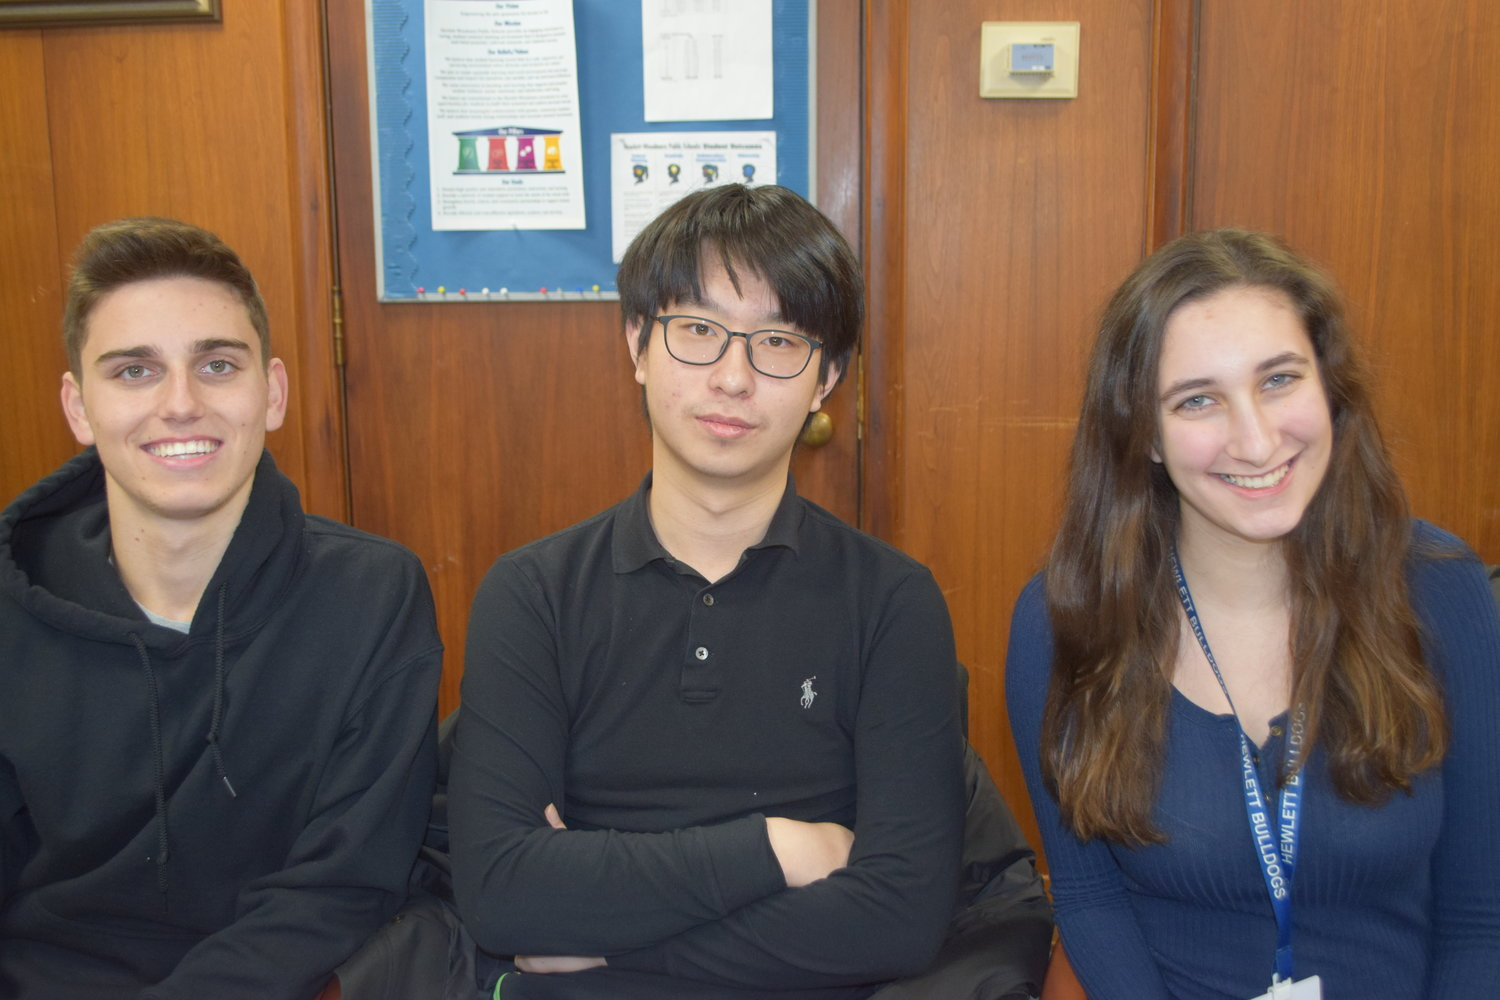 Hewlett High School seniors, from left, Samuel Bogdanov, Siyuan Yue and Julia Grossman were named semifinalists in the 2019 Regeneron Science Talent Search.